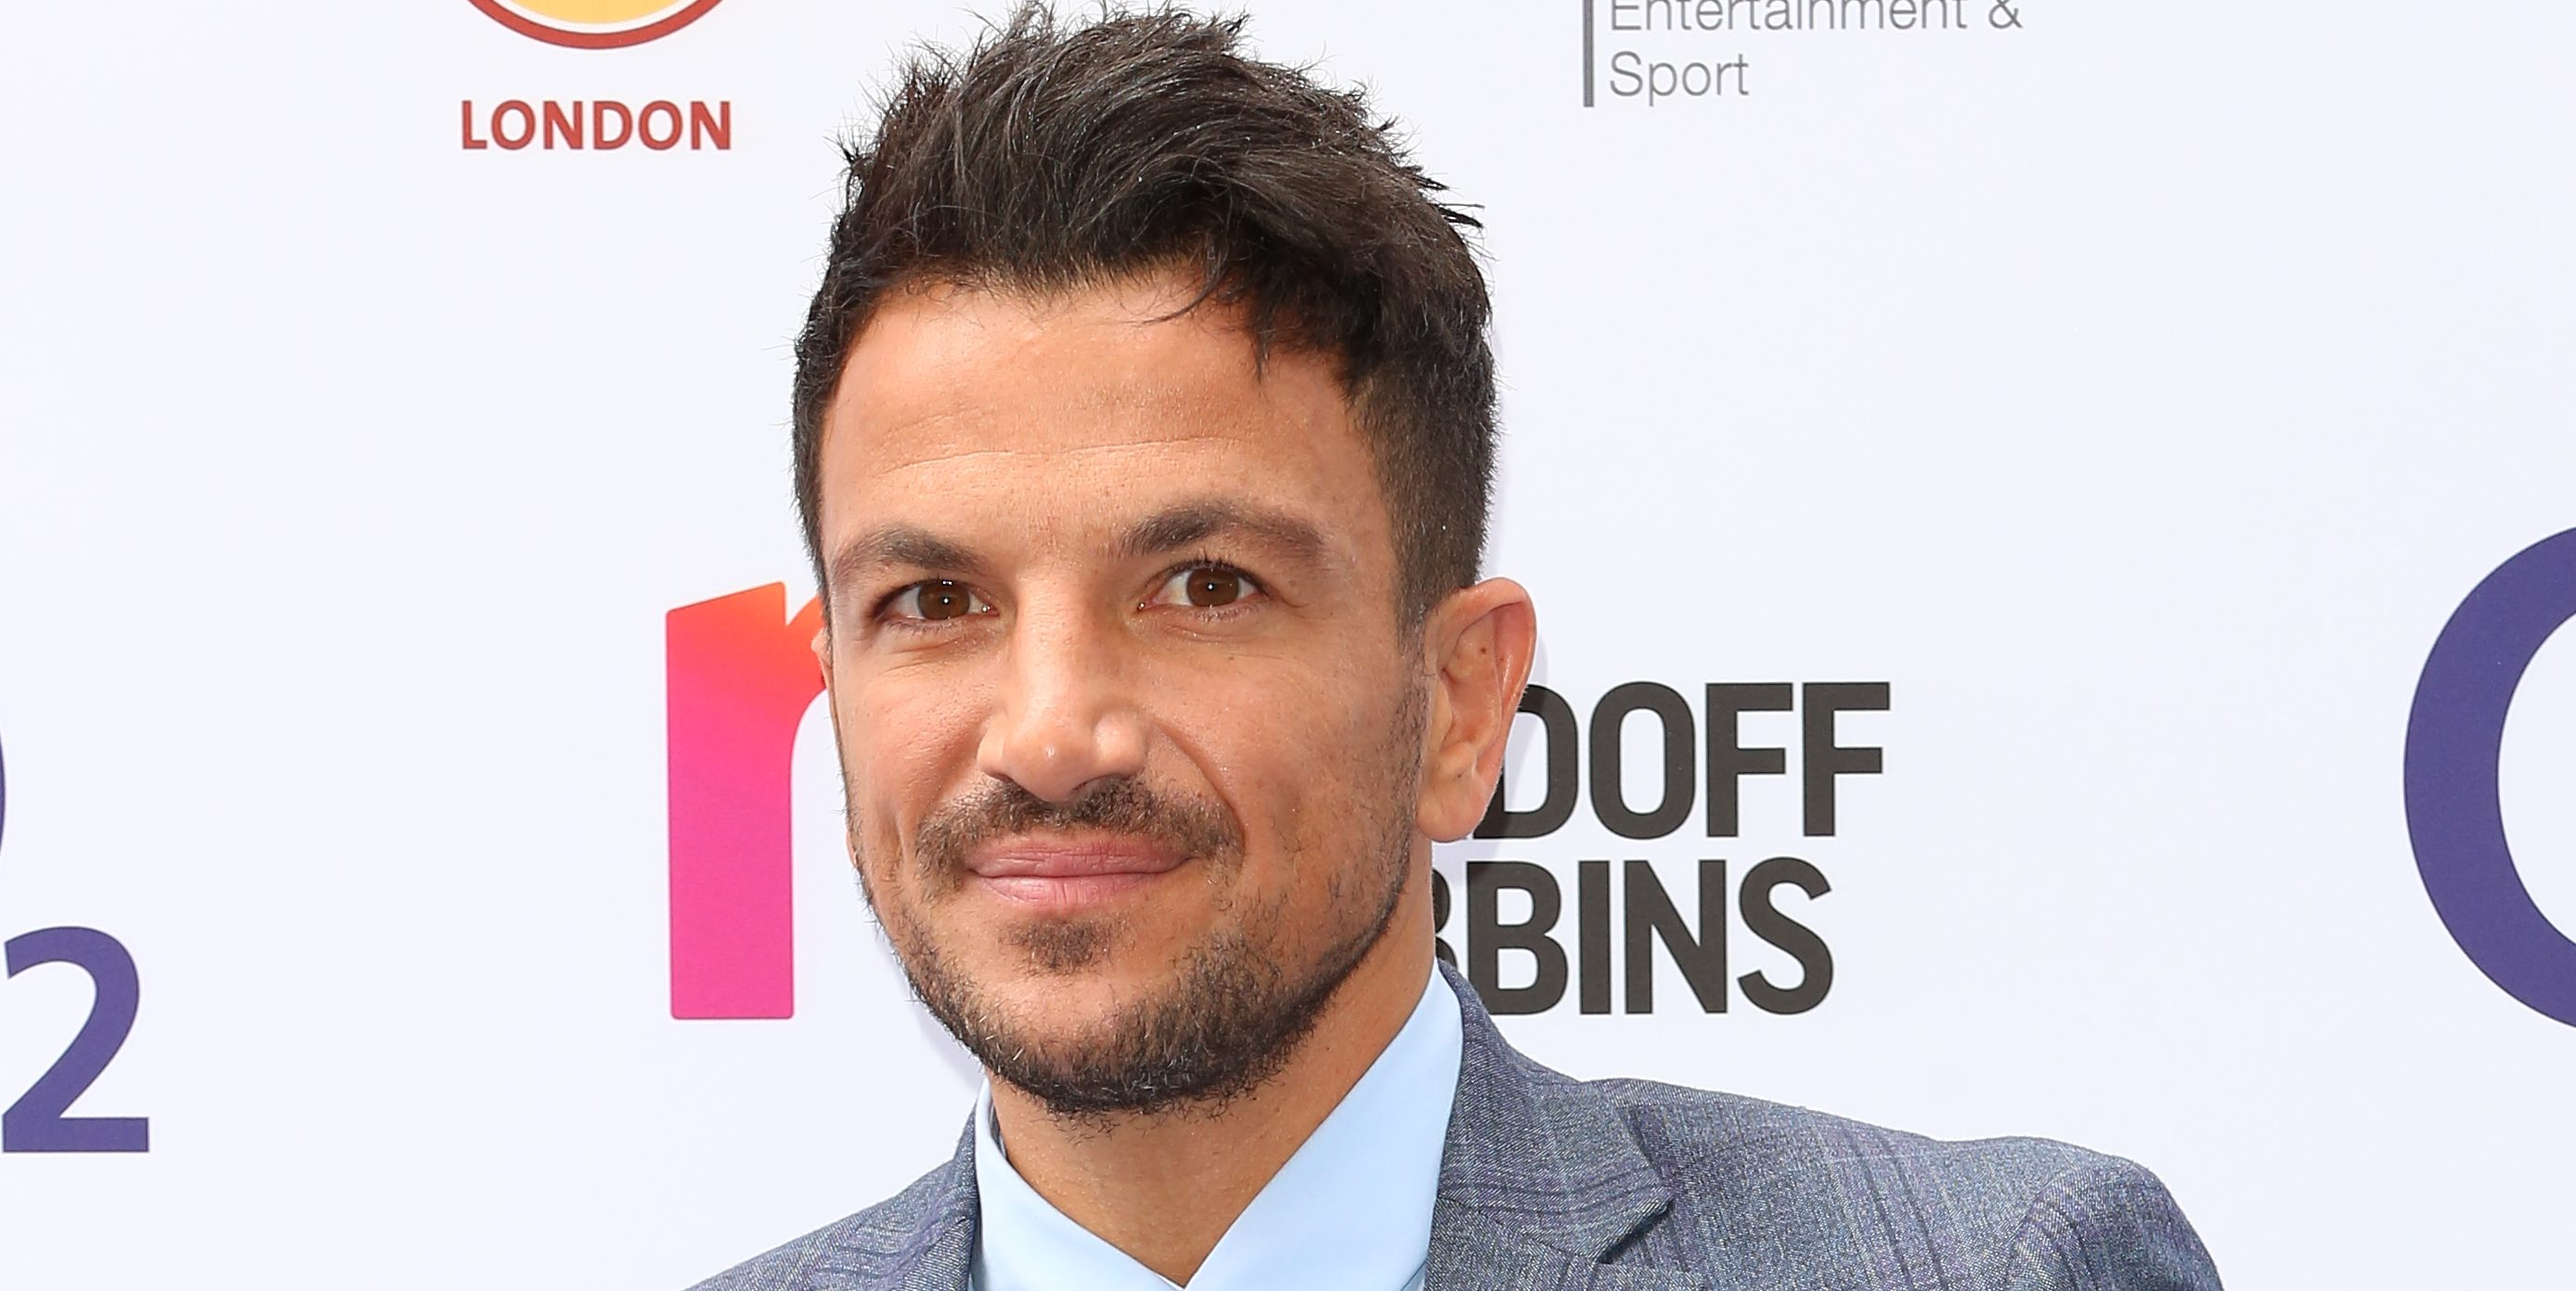 Peter Andre turns matchmaker as he tries to find his brother-in-law a date